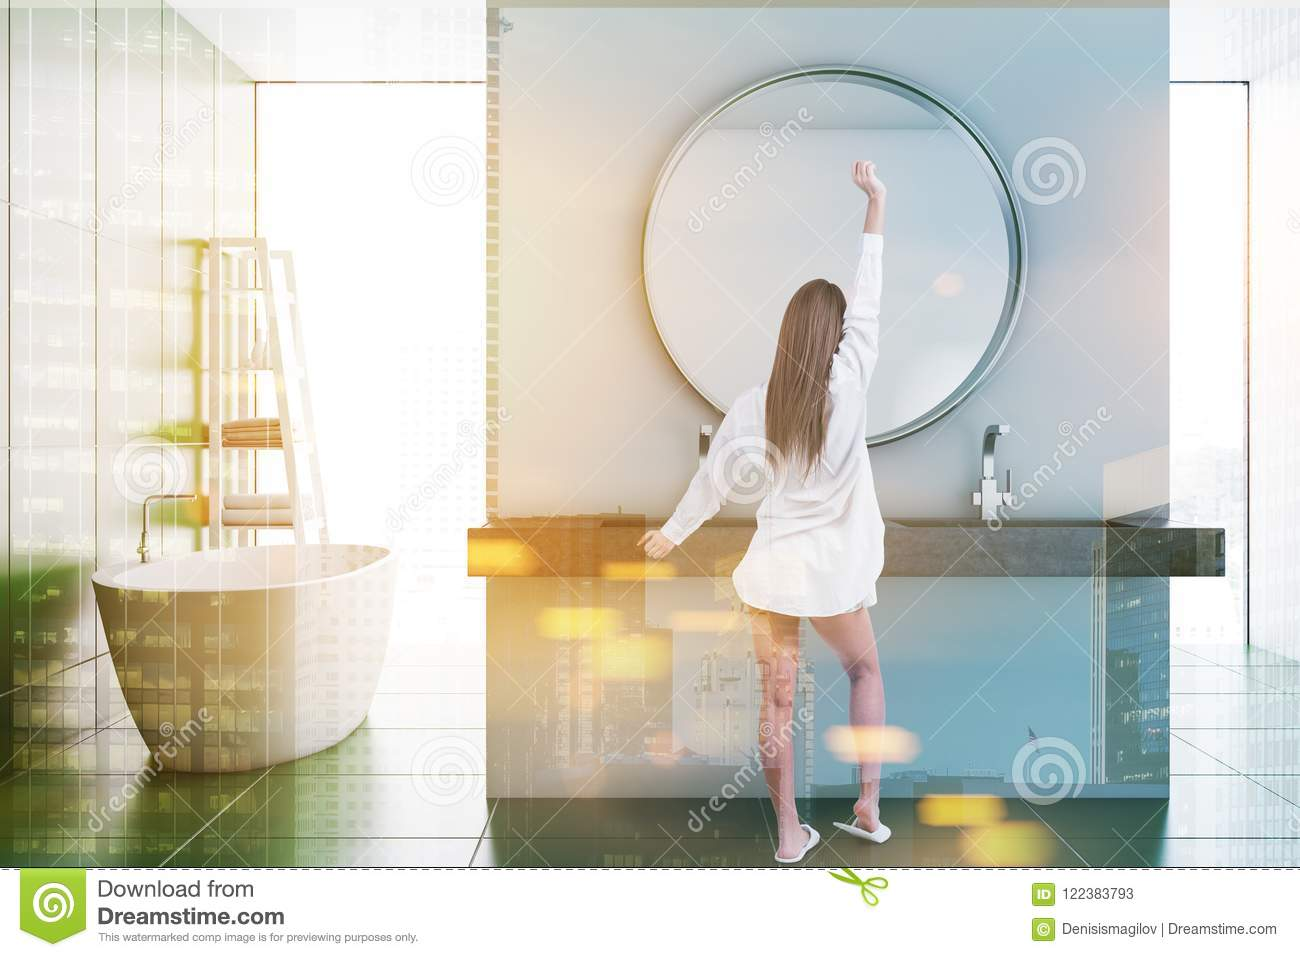 Round Mirror Bathroom Tub And Sink Woman Stock Image Image Of Modern Beautiful 122383793